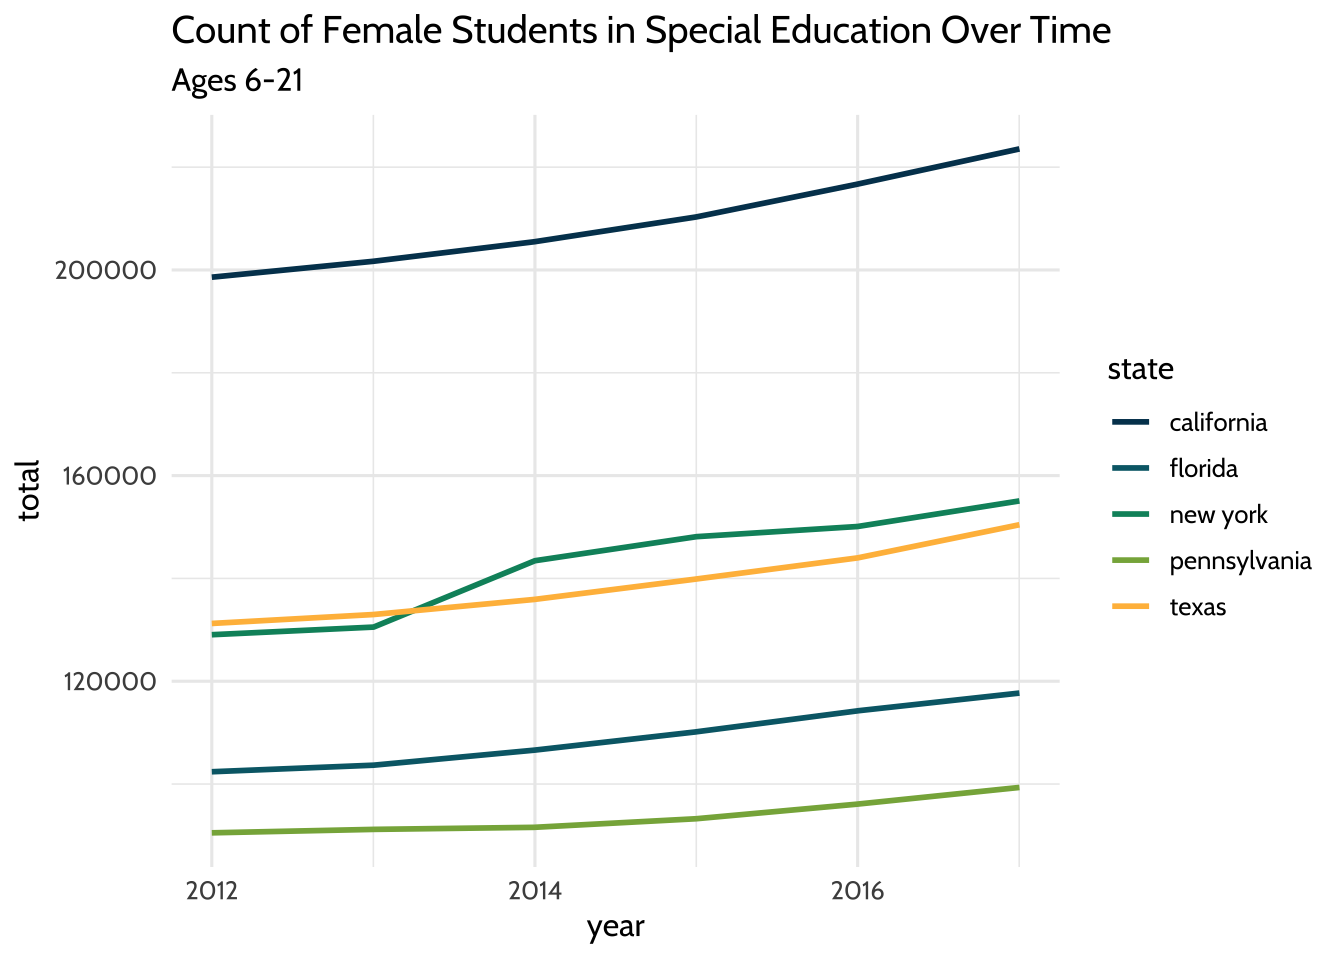 Count of Female Students in Special Education Over Time